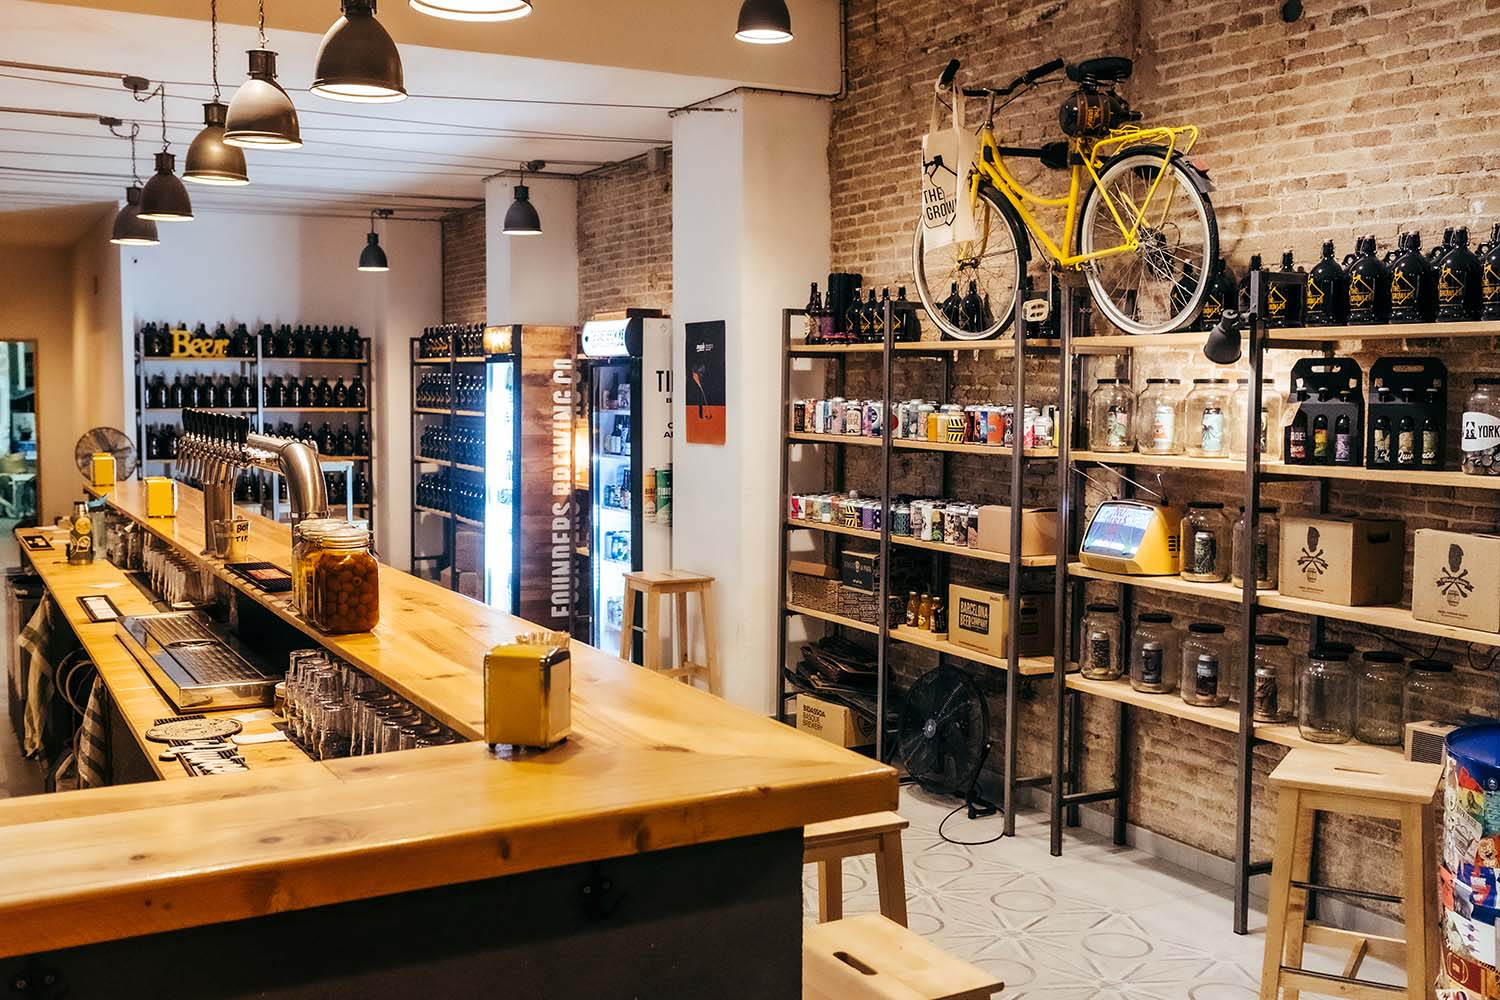 The Growler, the perfect spot for a relaxed after-work pint of craft beer